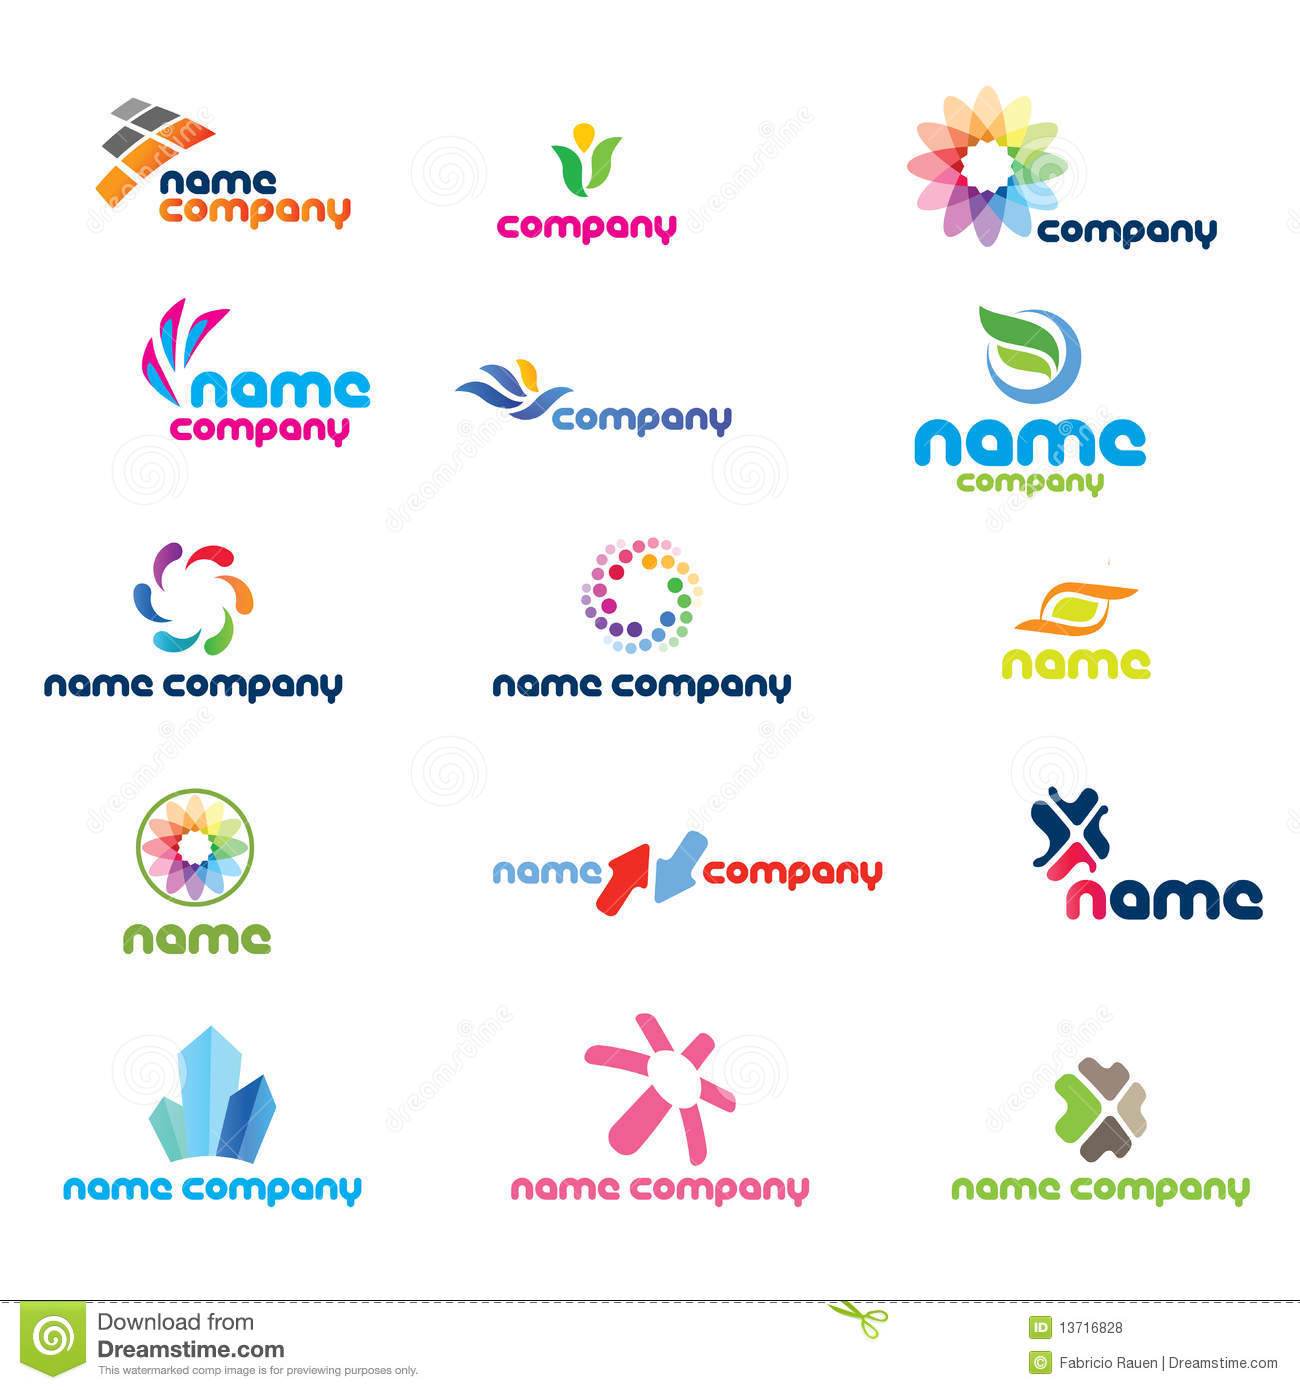 how to create a good brand logo